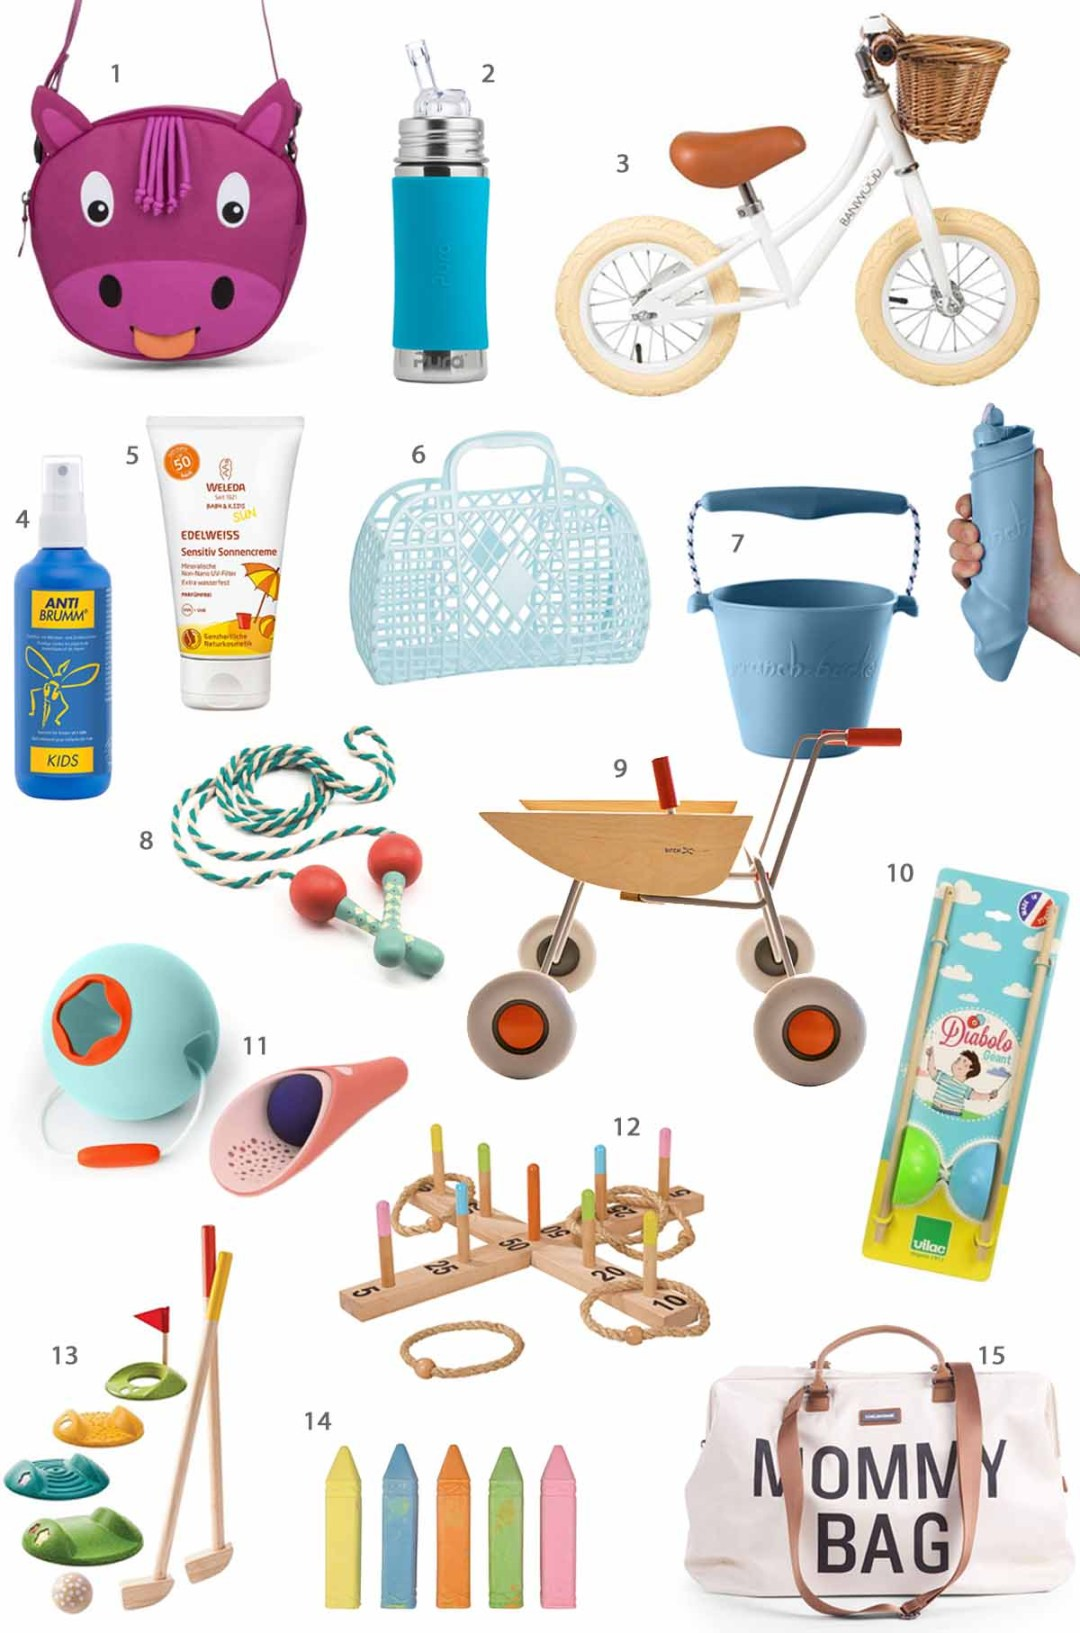 Lovable things for outdoors: outdoor toys and useful things for warm days